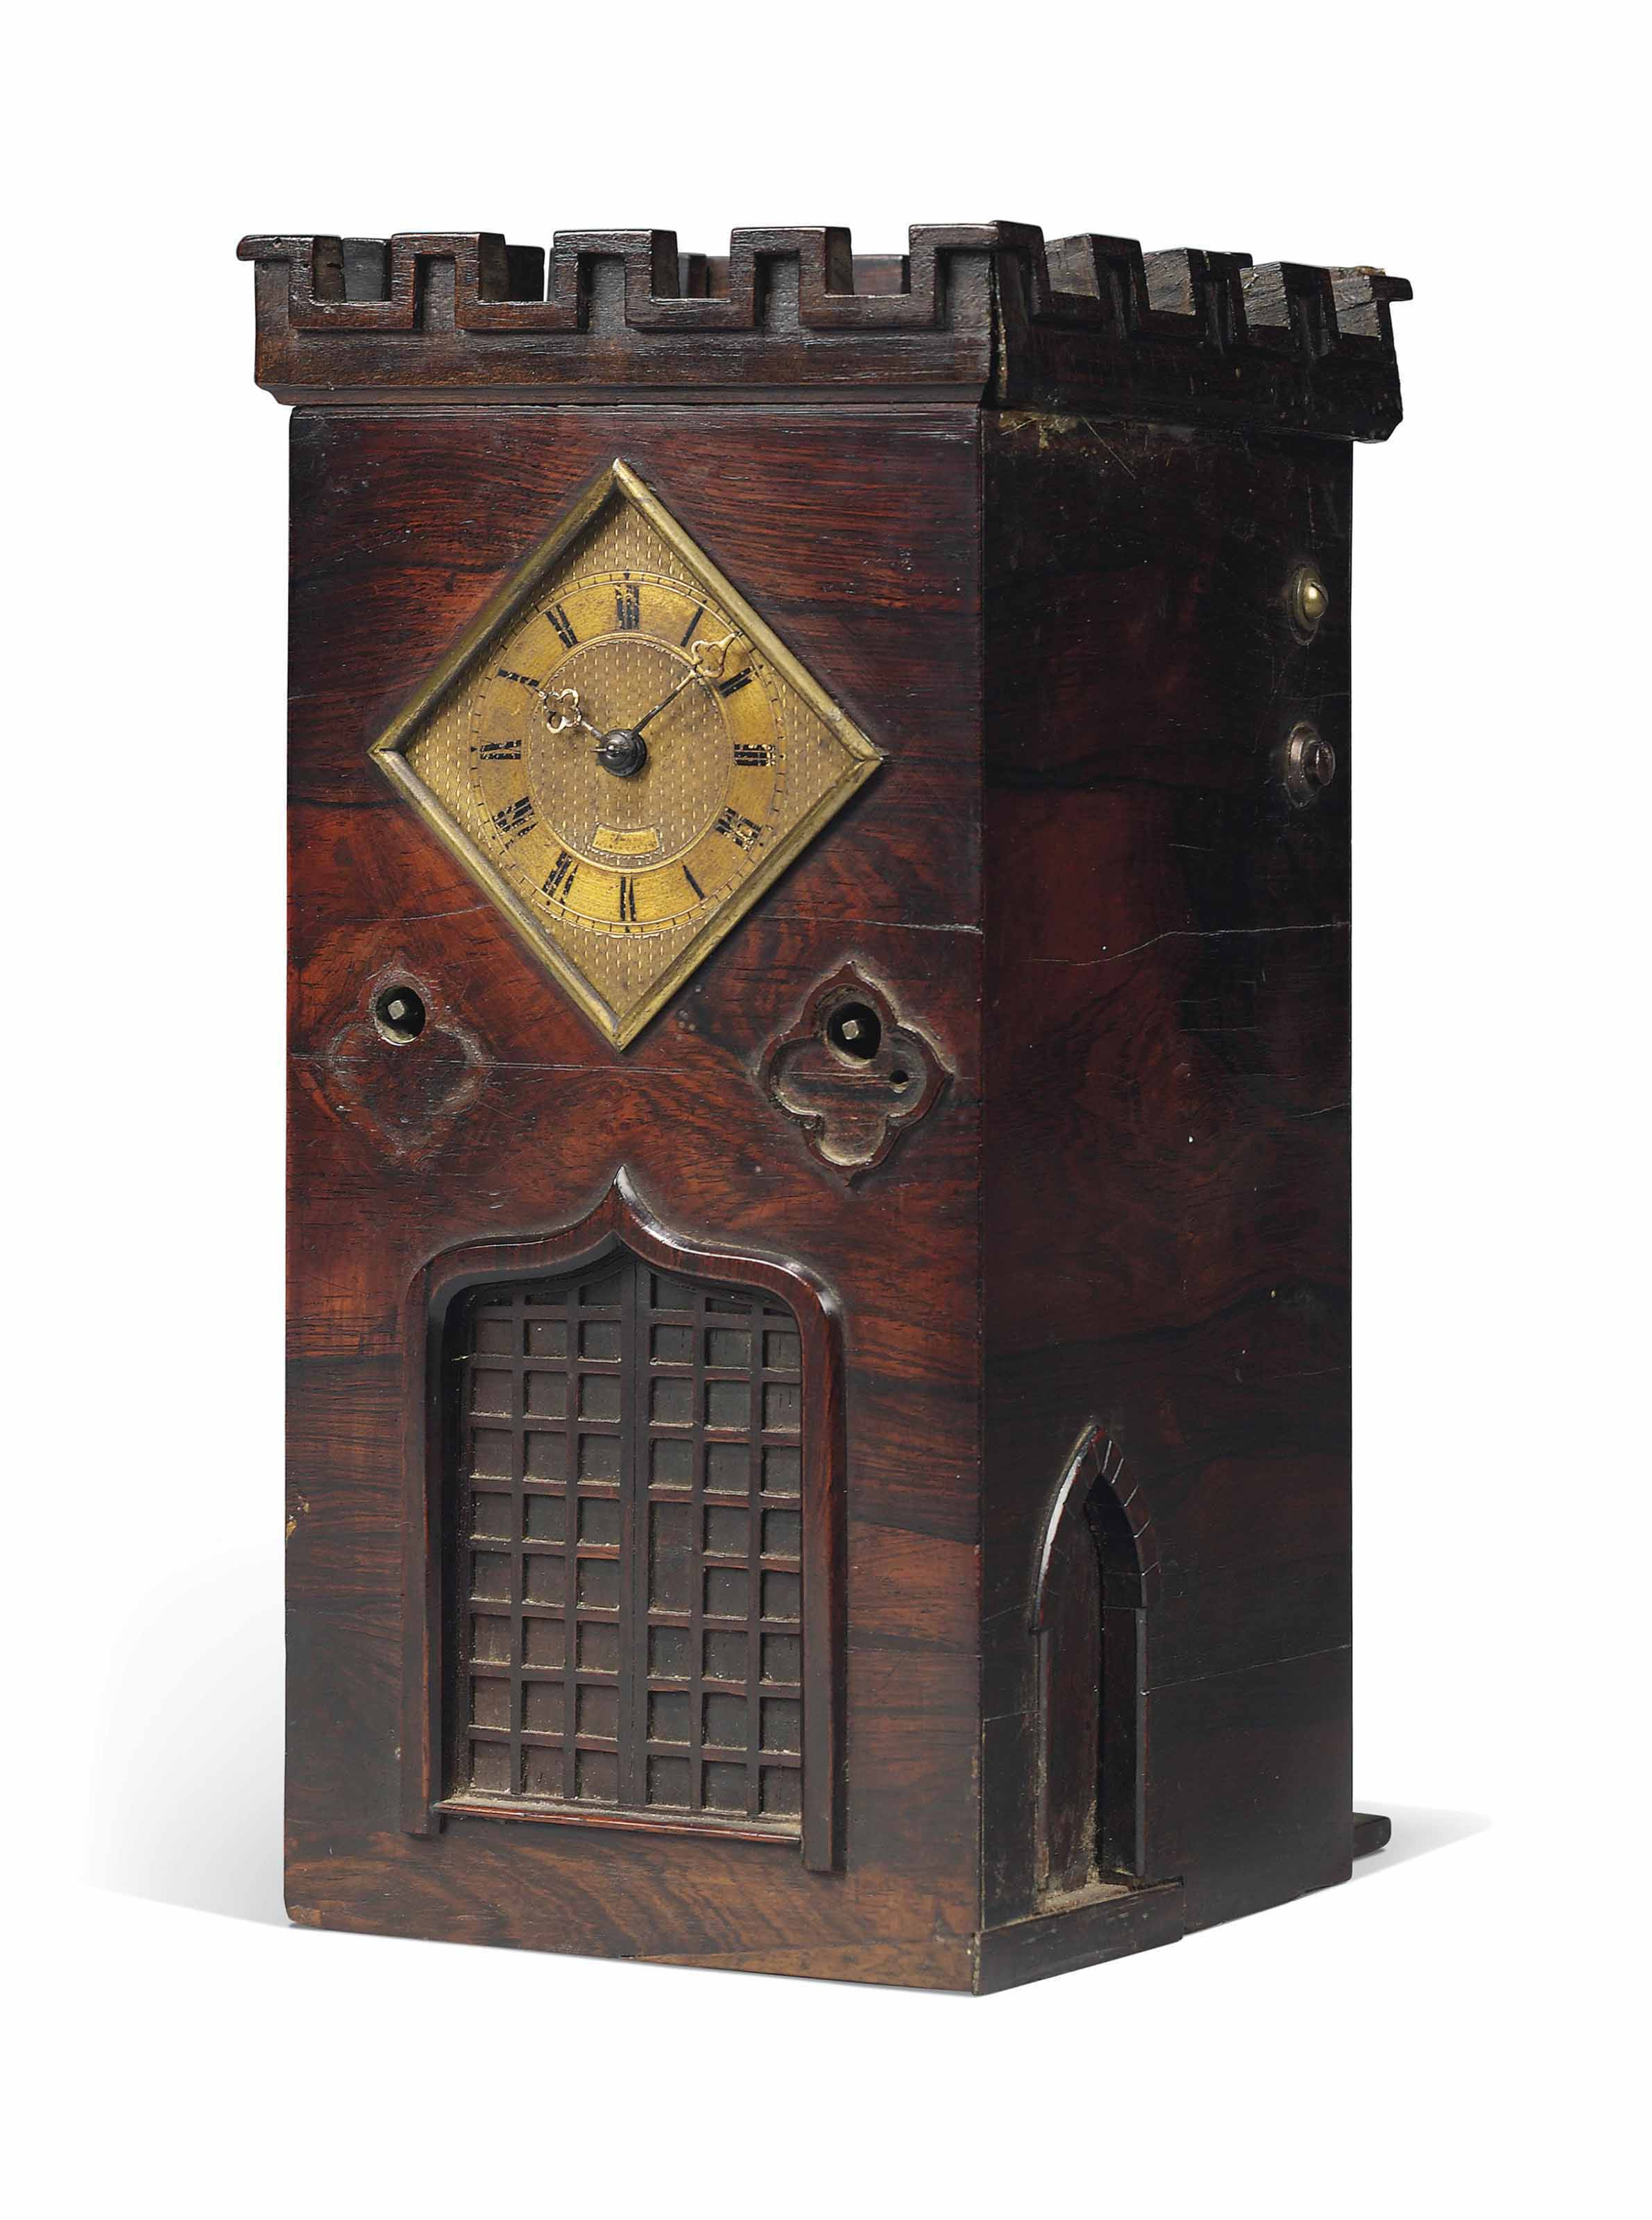 AN EARLY VICTORIAN ROSEWOOD NOVELTY TABLE CLOCK